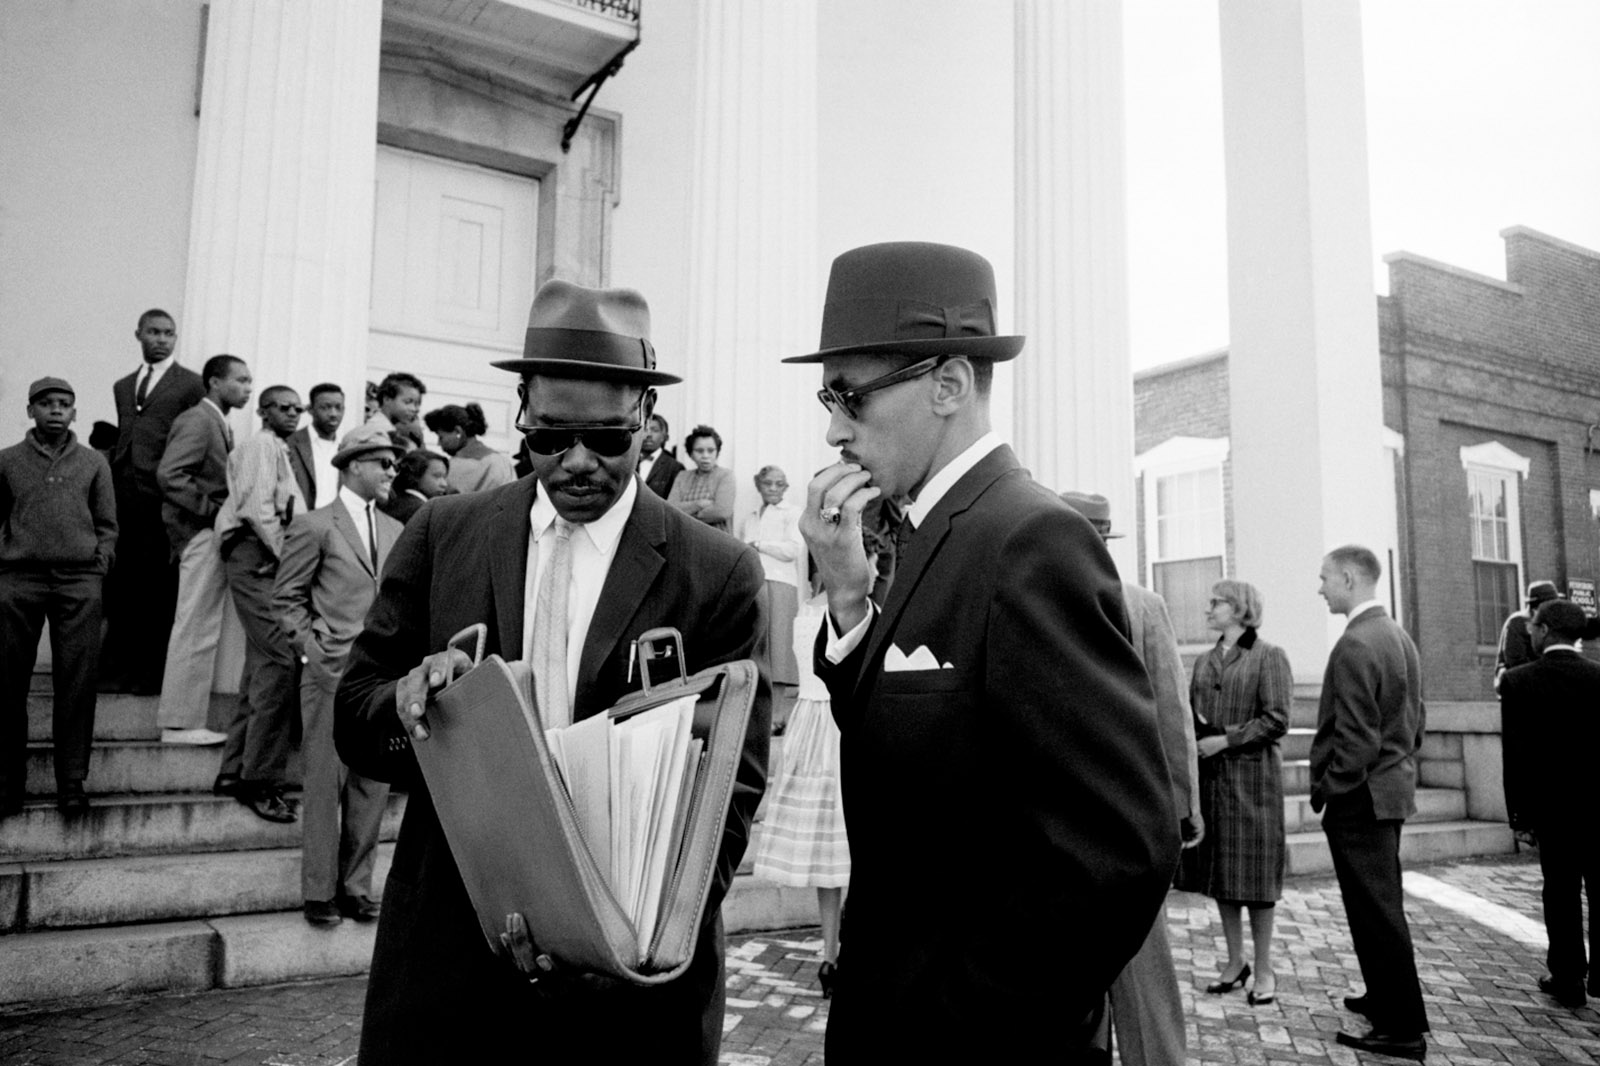 Reverend Wyatt T. Walker (right), executive director of the Southern Christian Leadership Conference and chief of staff to Martin Luther King Jr., with a lawyer at the courthouse in Petersburg, Virginia, to argue for the rights of nonviolent demonstrators against a segregationist trespassing ordinance aimed at thwarting sit-ins, 1960